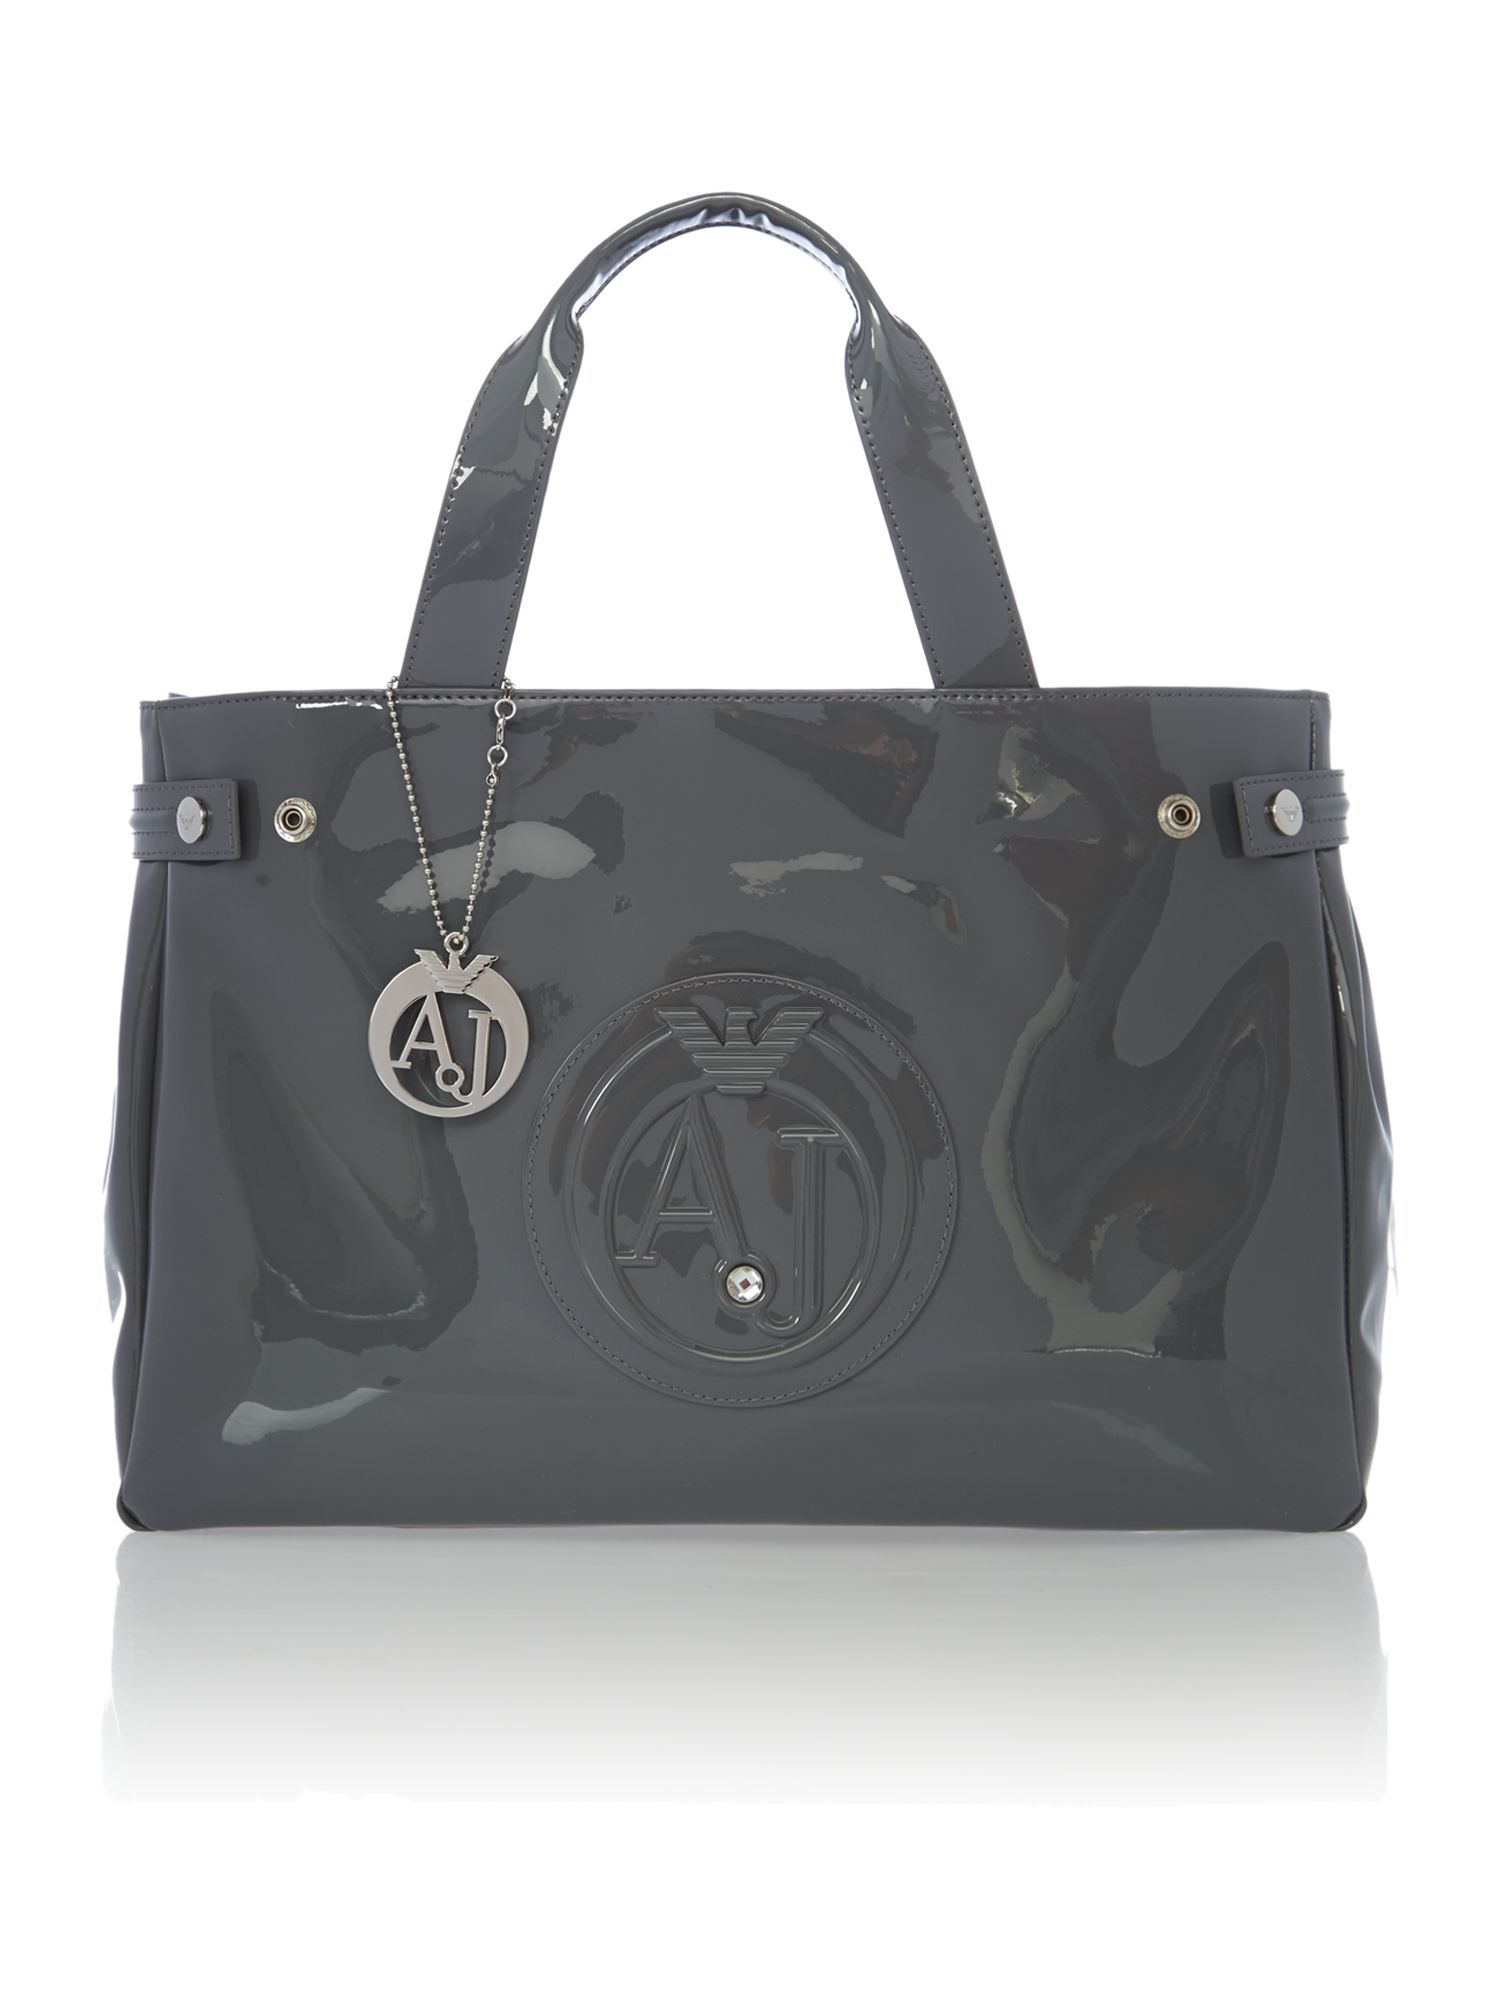 armani bags armani jeans patent grey tote bag - house of fraser HUYBVND